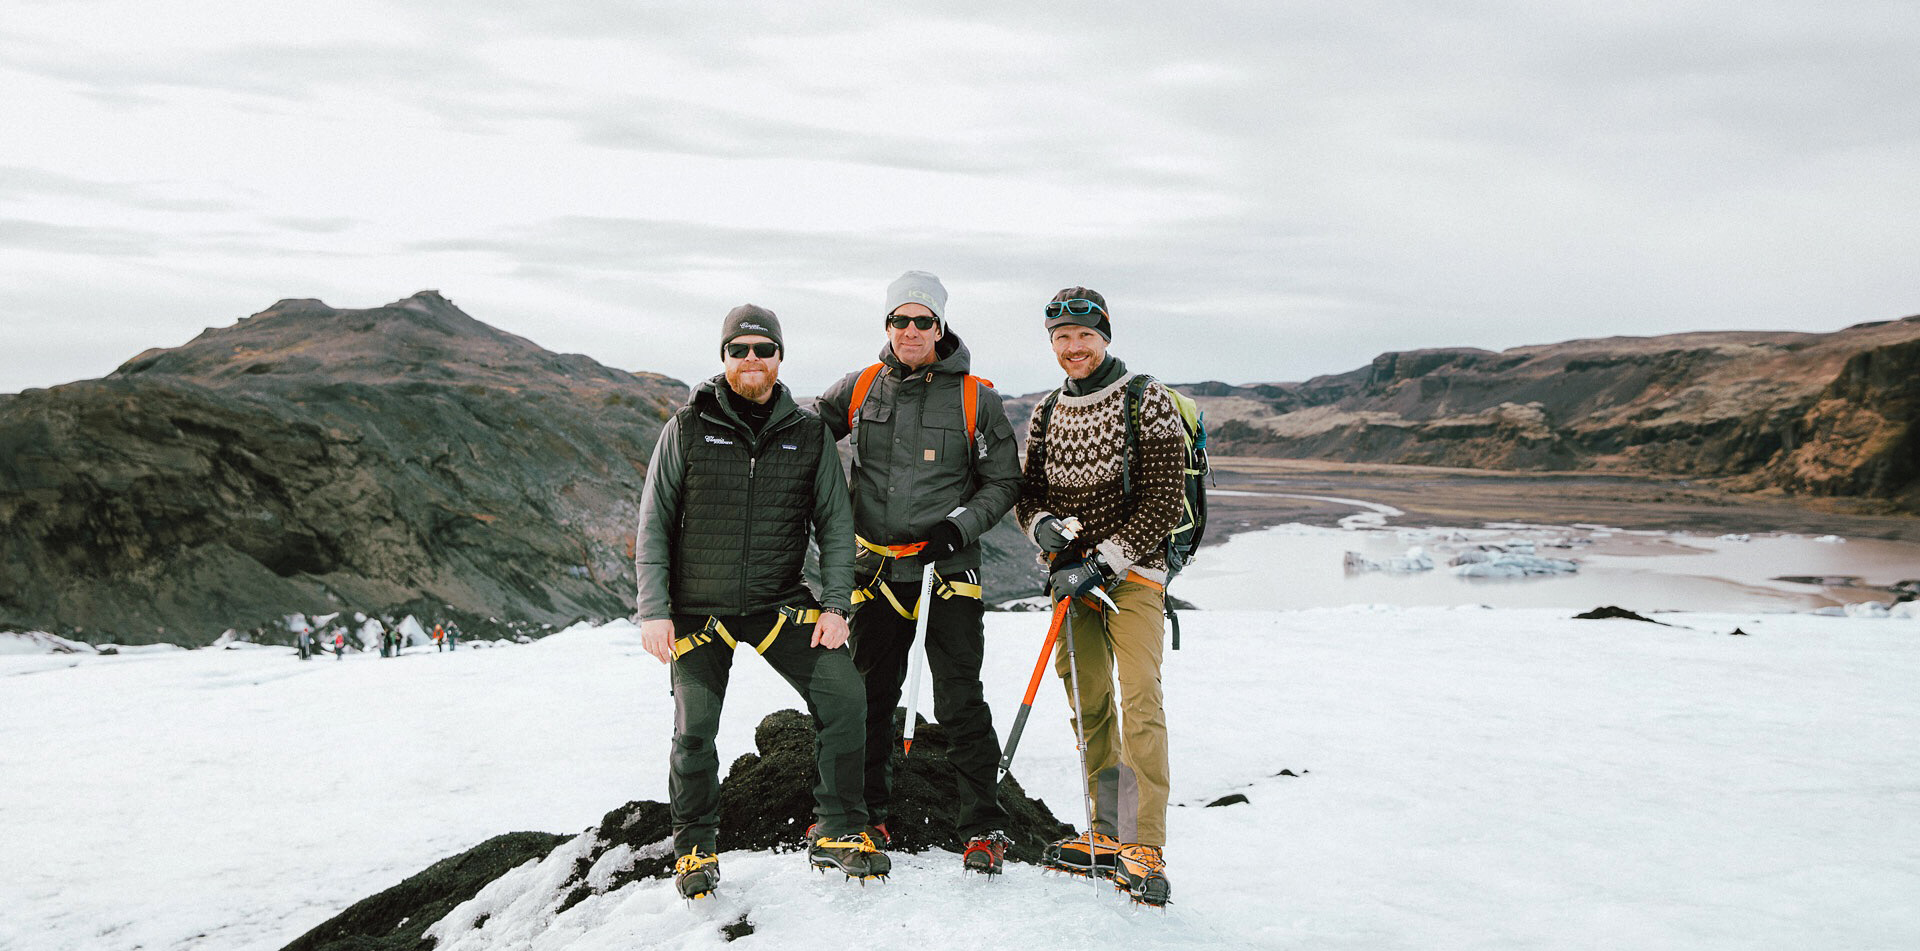 Europe Iceland traveler with local Icelandic guides wearing glacier hiking gear - luxury vacation destinations